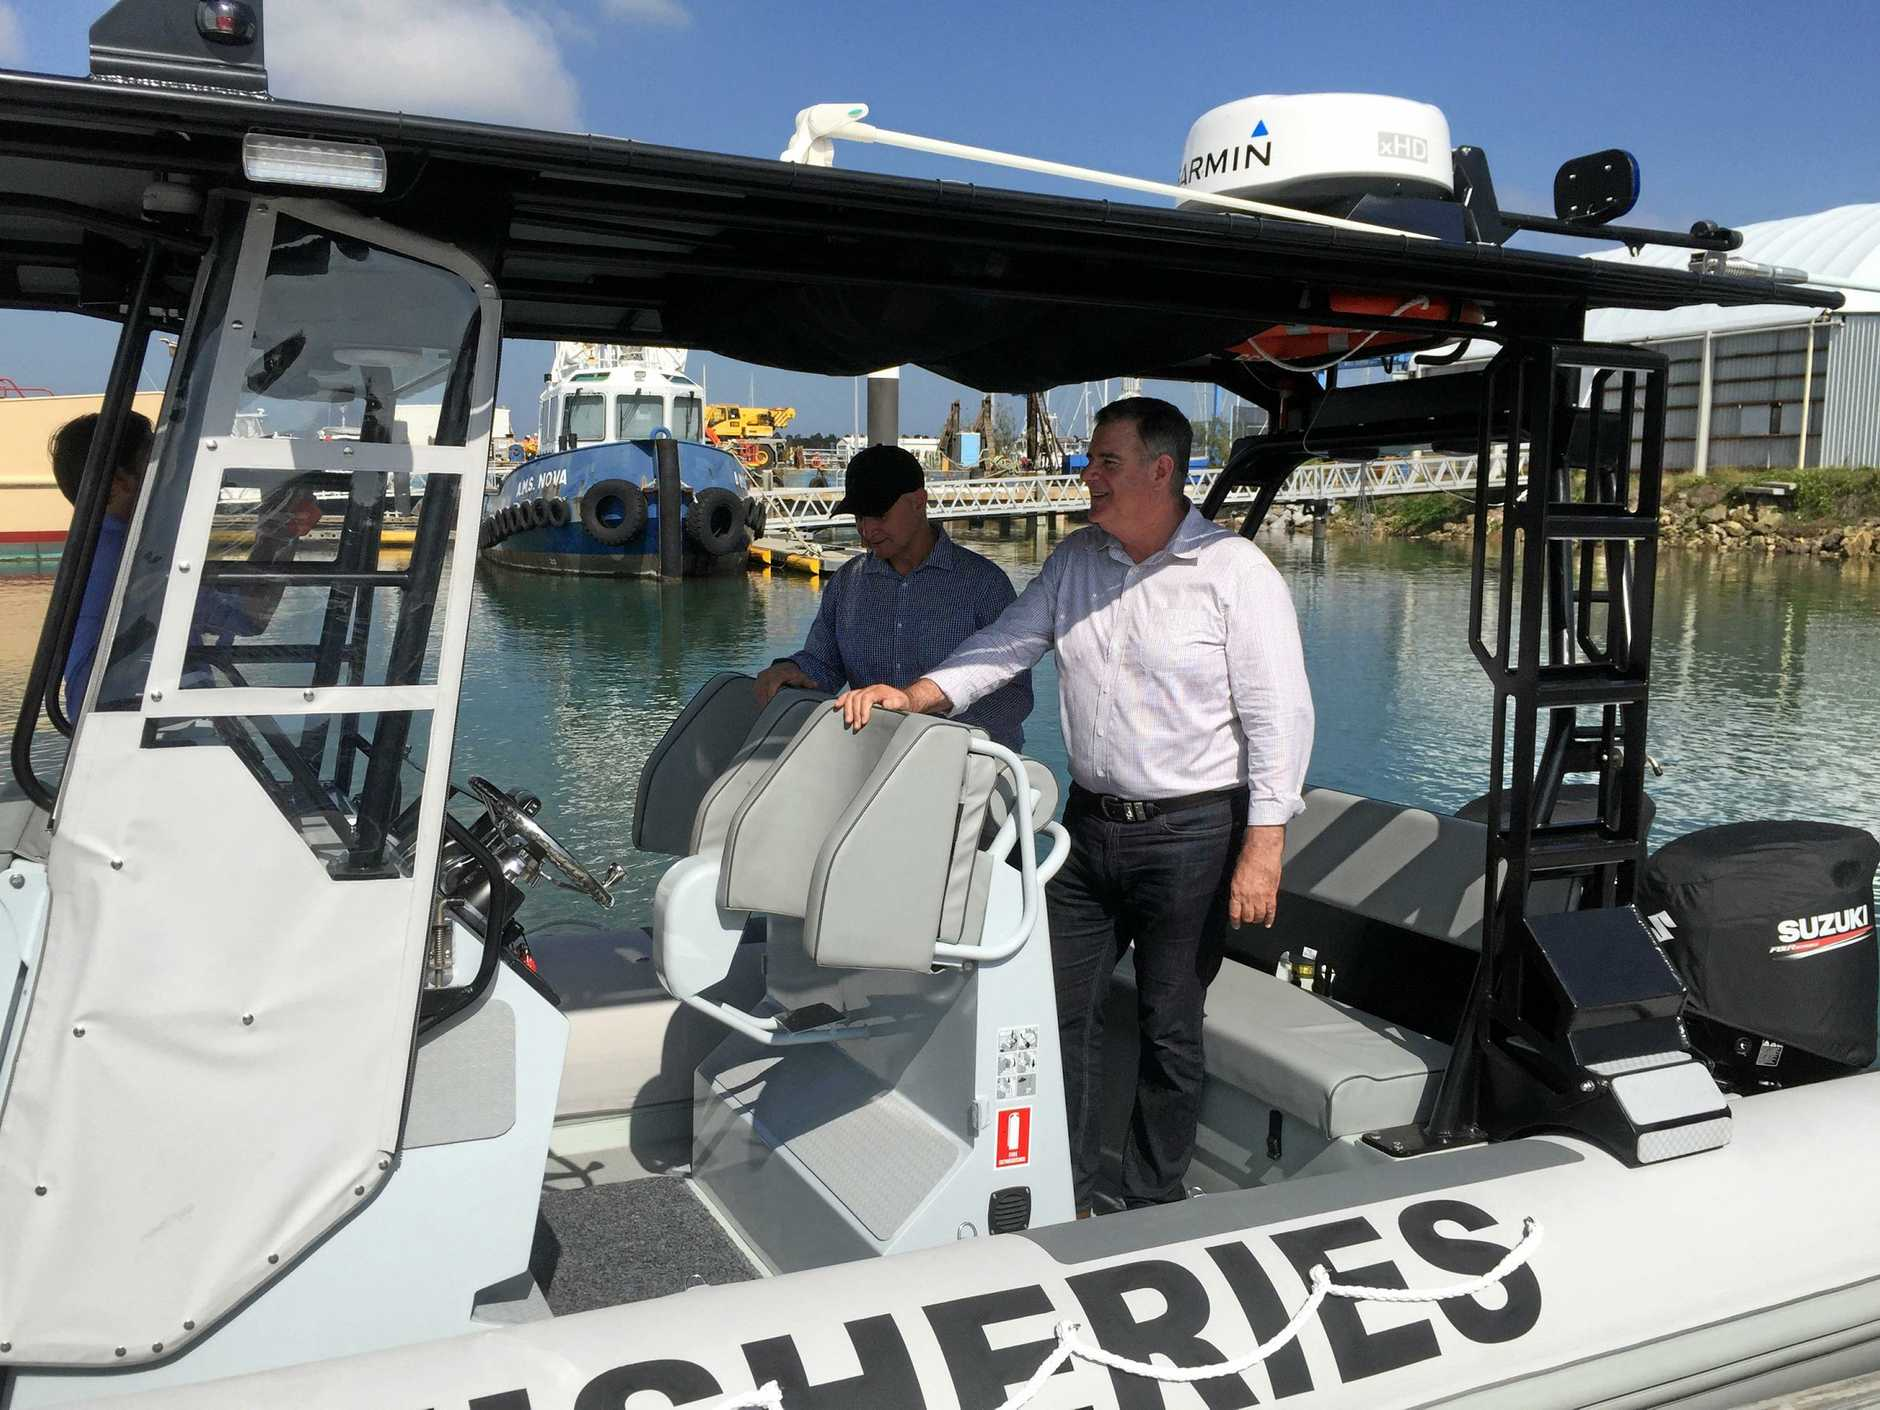 Gladstone Fisheries latest vessel, the NM Frost makes a splash.